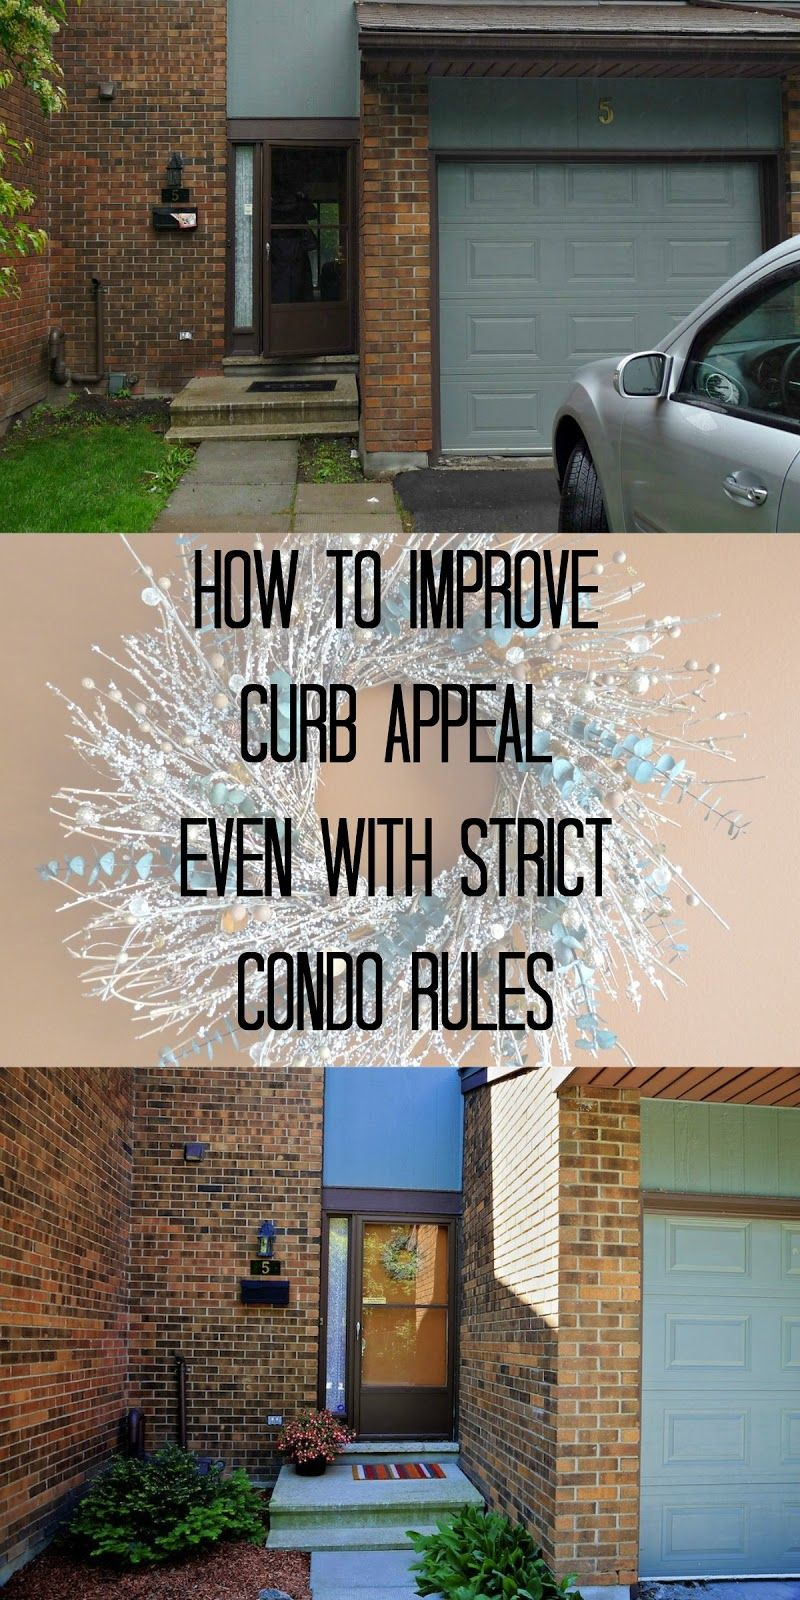 Adding Curb Appeal to a Small Townhouse, Even With Strict Condo Rules and a  Small Budget.